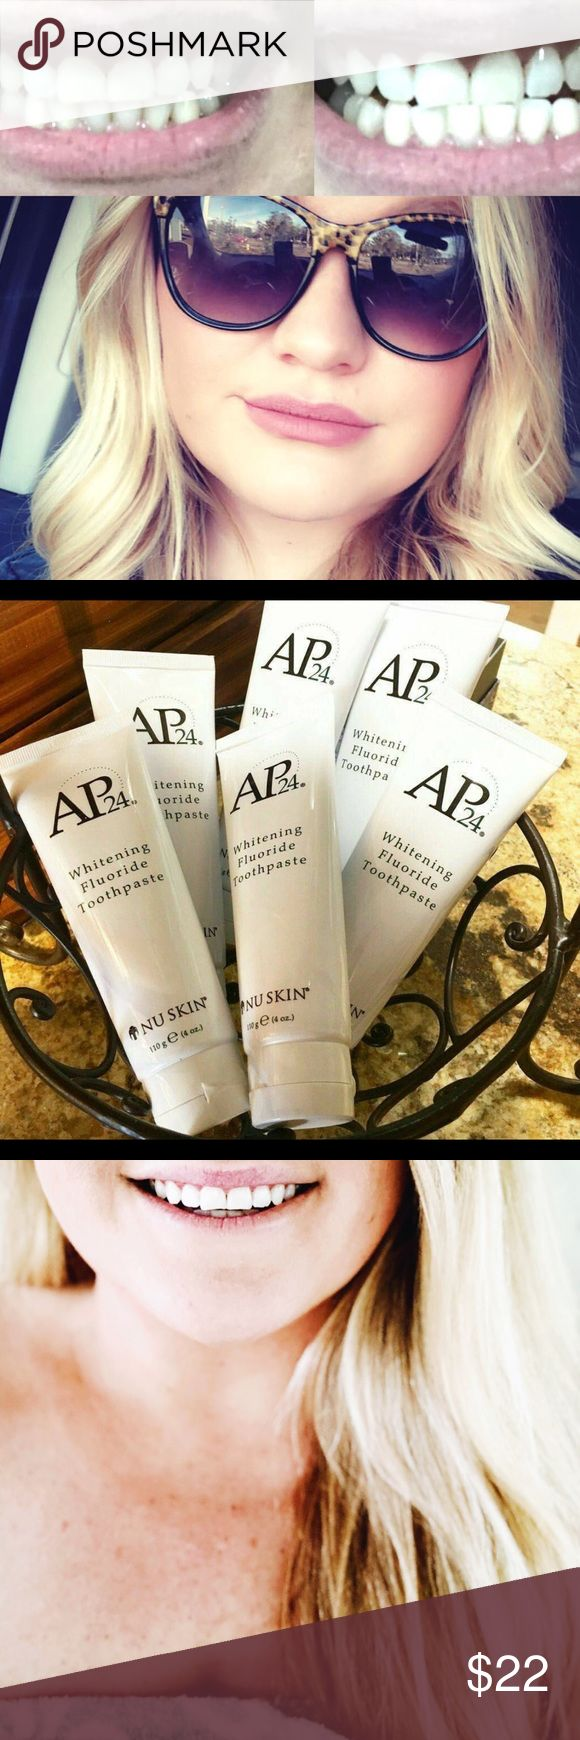 Ap24 whitening toothpaste toothpaste that also serves as a whitening system with ingredients to brighten and restore teeth to whiteness. It has no bleach or peroxide so it is not going to intrinsically whiten your teeth but more so remove daily surface stains from soda, coffee, tobacco, wine, etc. and keep it from coming back. Since it doesn't have the bleach or peroxide it also doesn't cause that sensitivity some people- like myself have got from bleaching.. This also has fluoride in it…